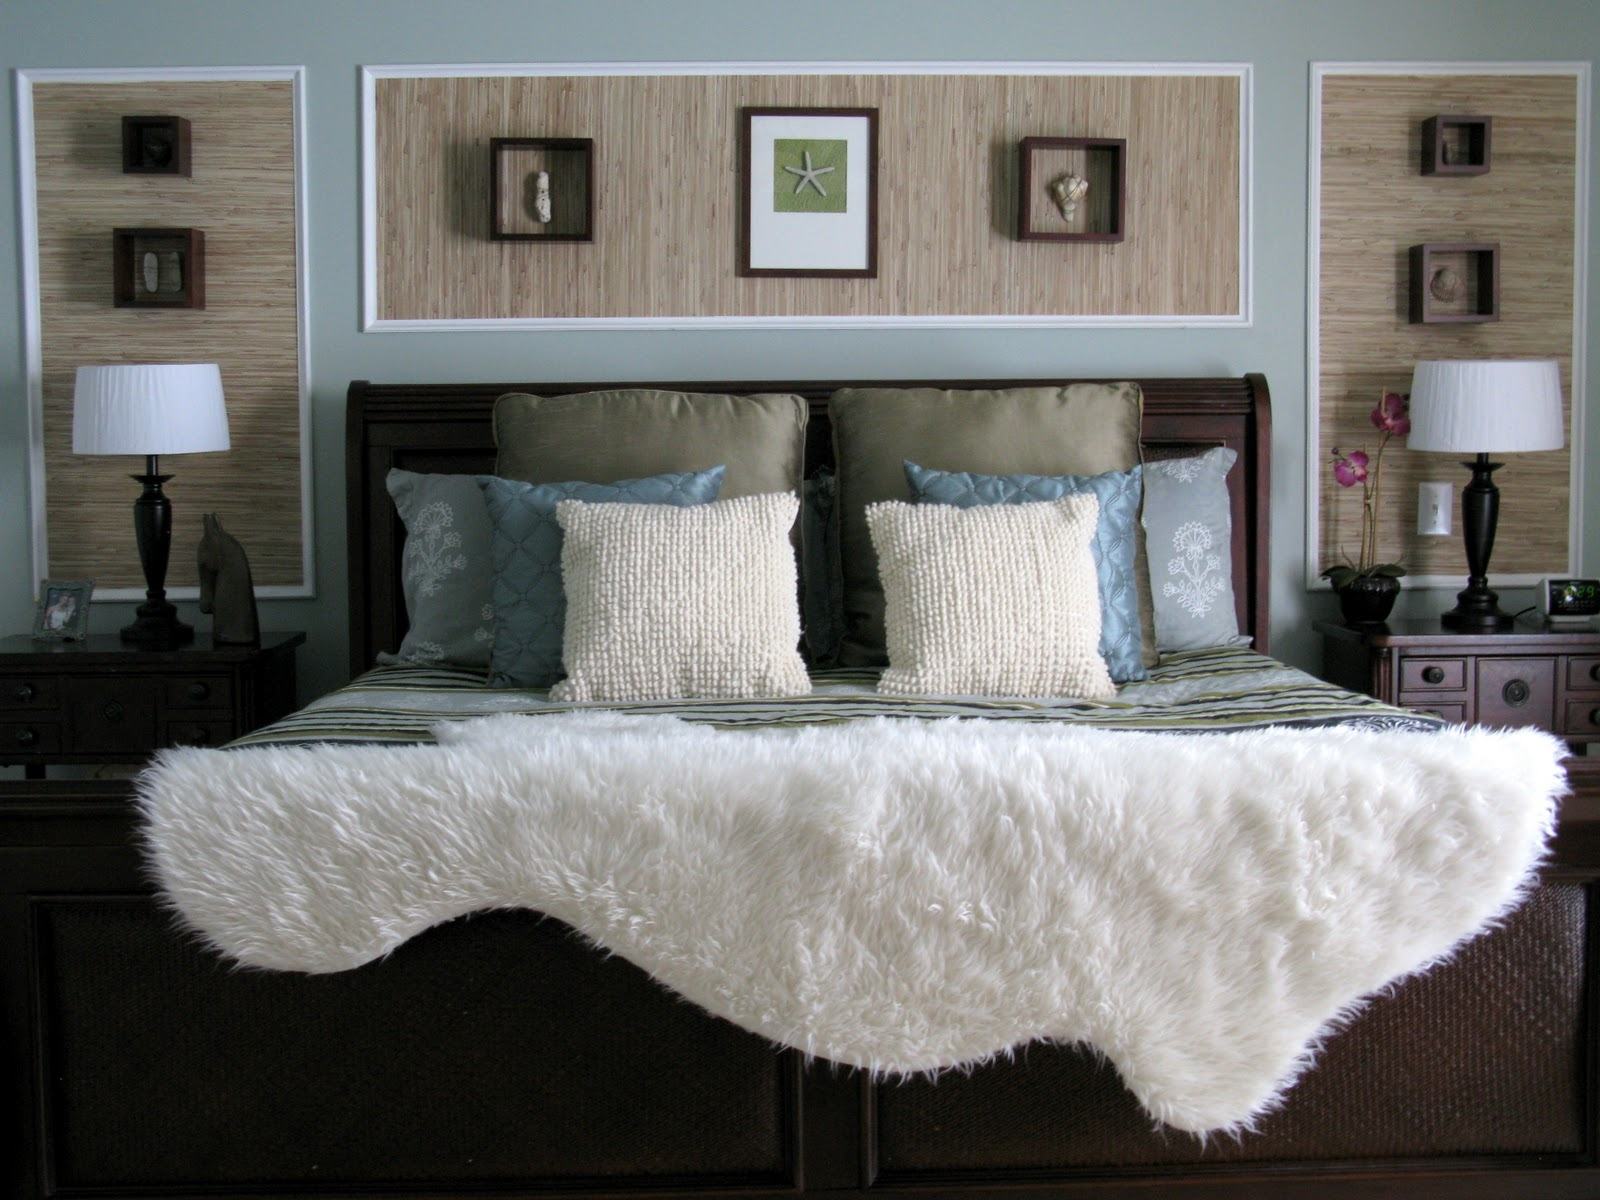 Voted One Of The Top Bedrooms By Houzz Readers My Headboard Canopy Ideas Are On Hgtv